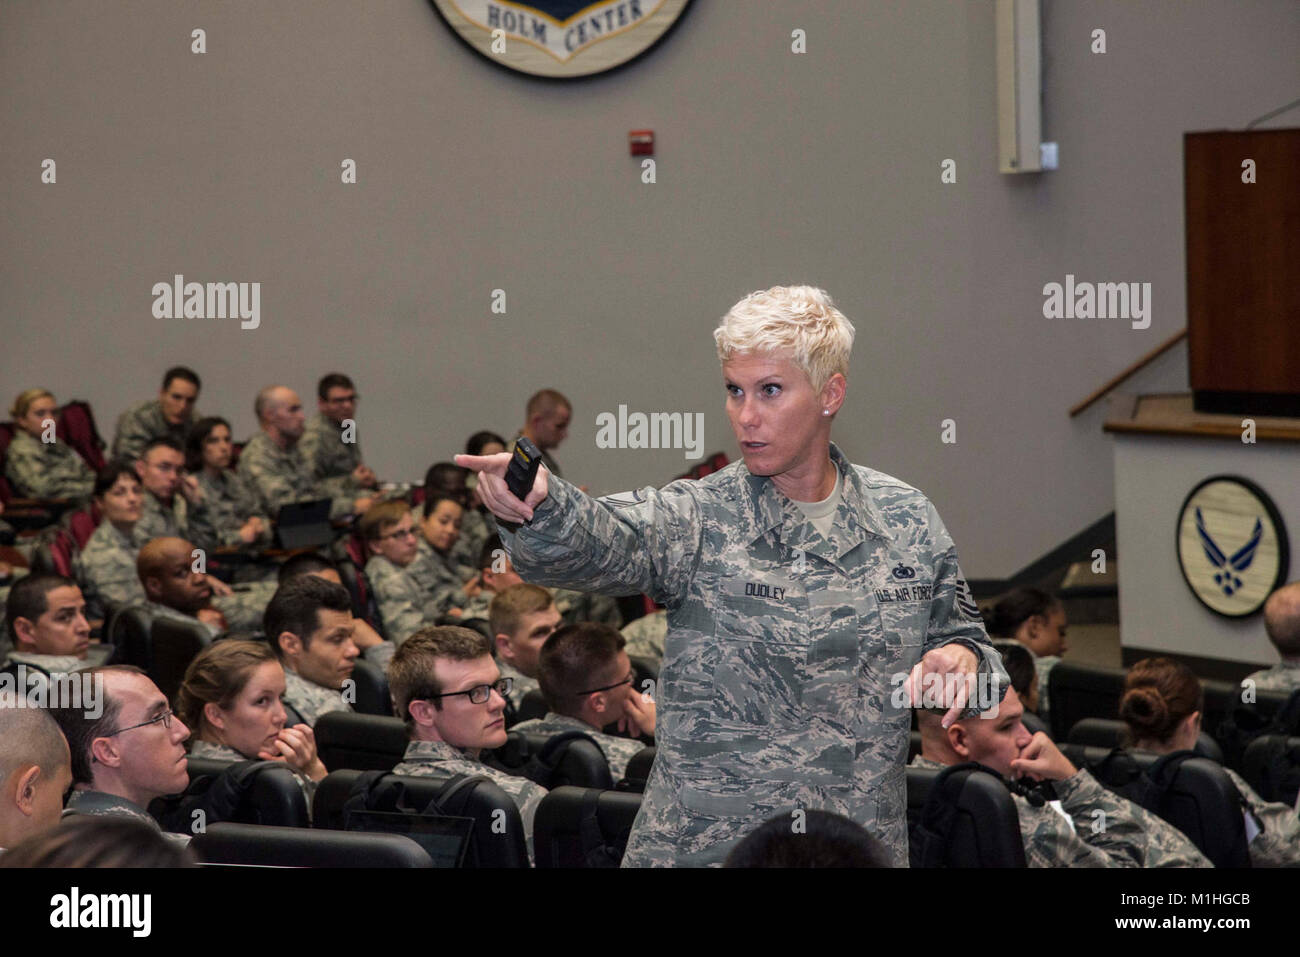 Master sgt tiffany dudley officer training school military training stock photo royalty free - Military officer training school ...